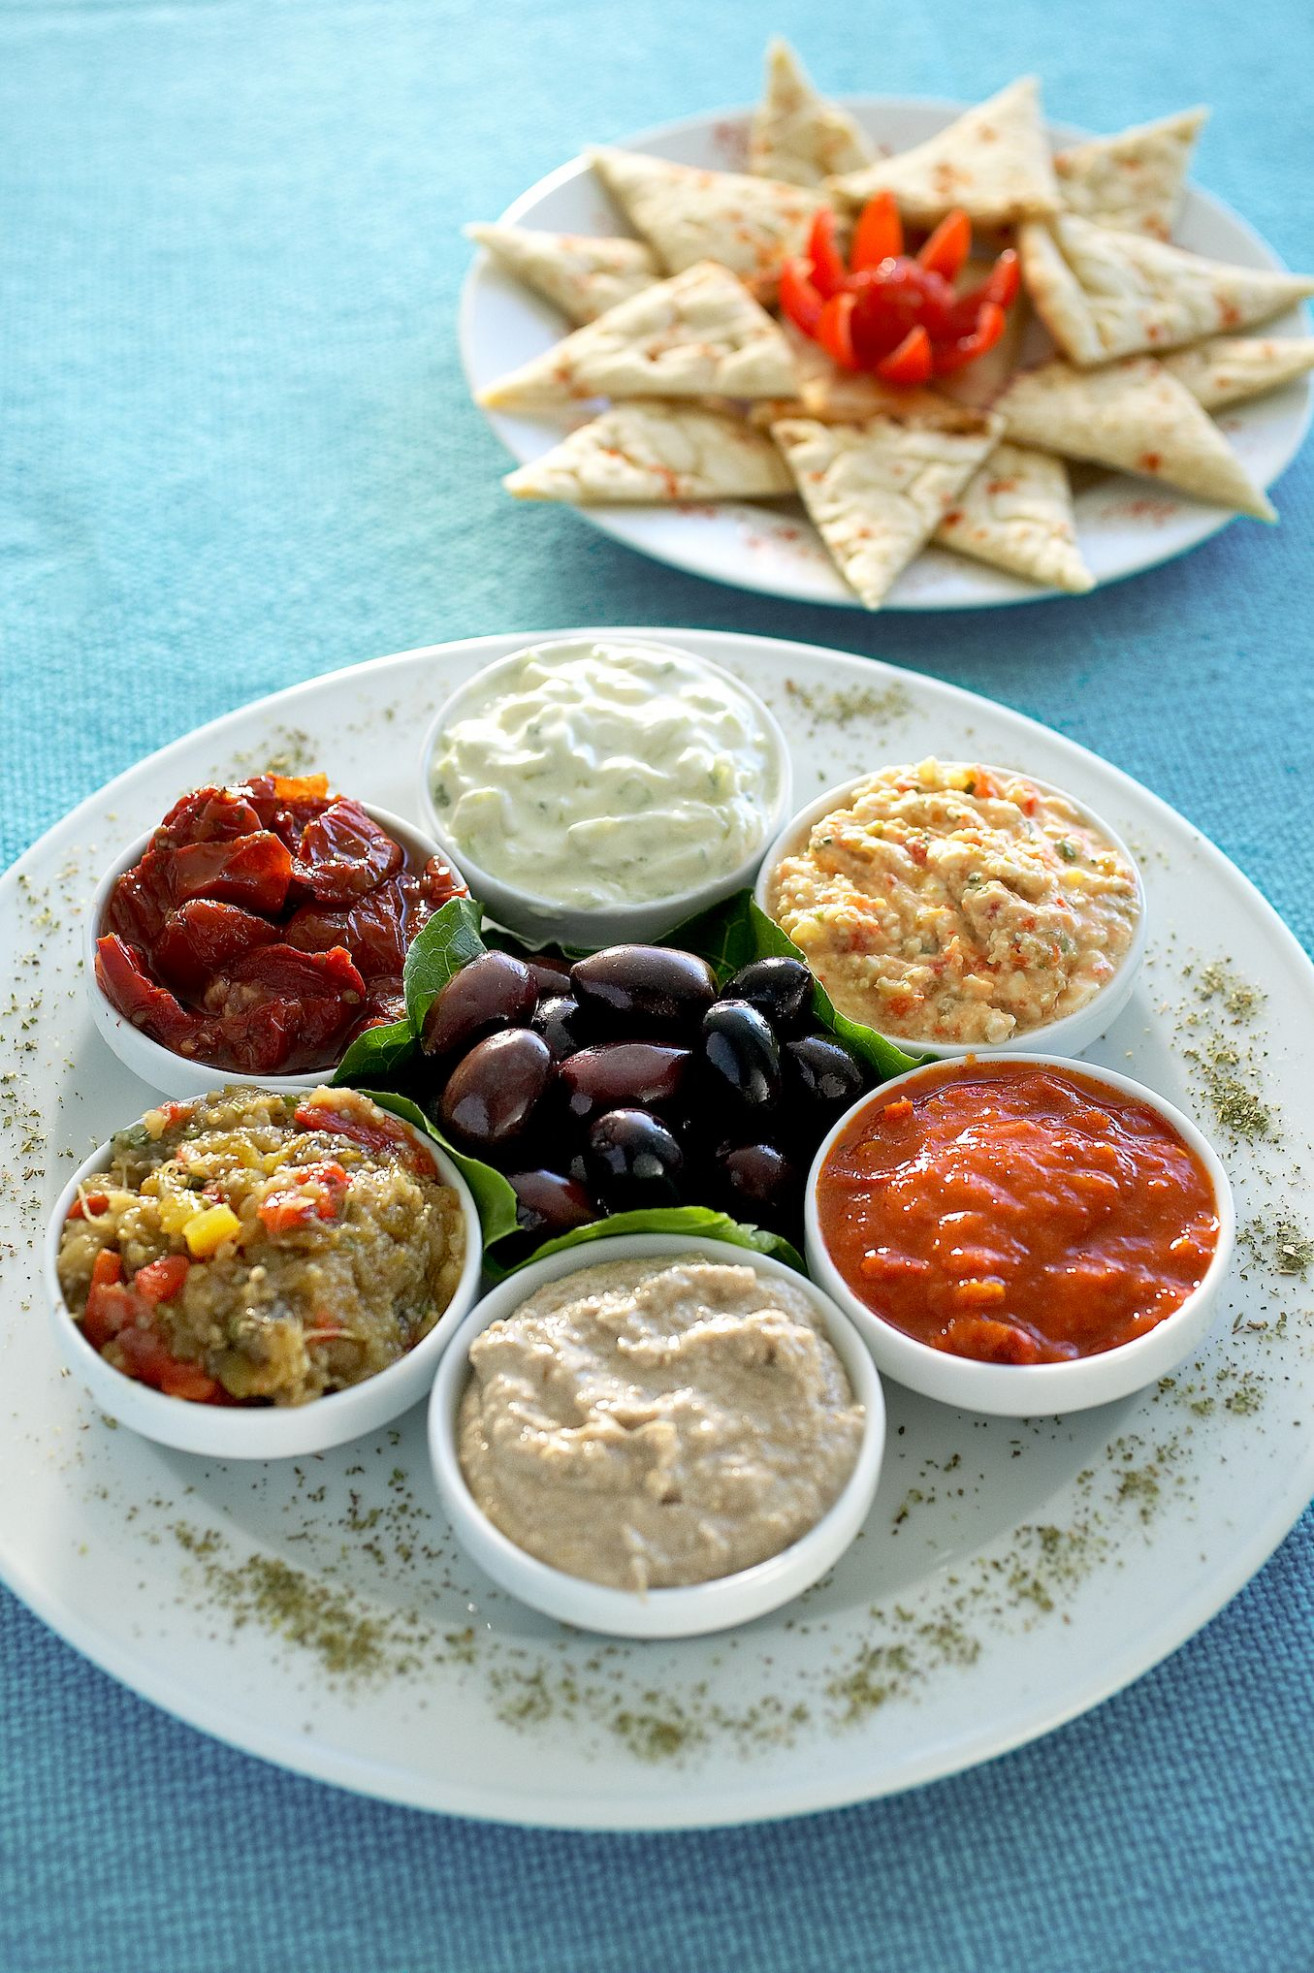 Mediterranean Meze, the best selection of dips to enjoy ..